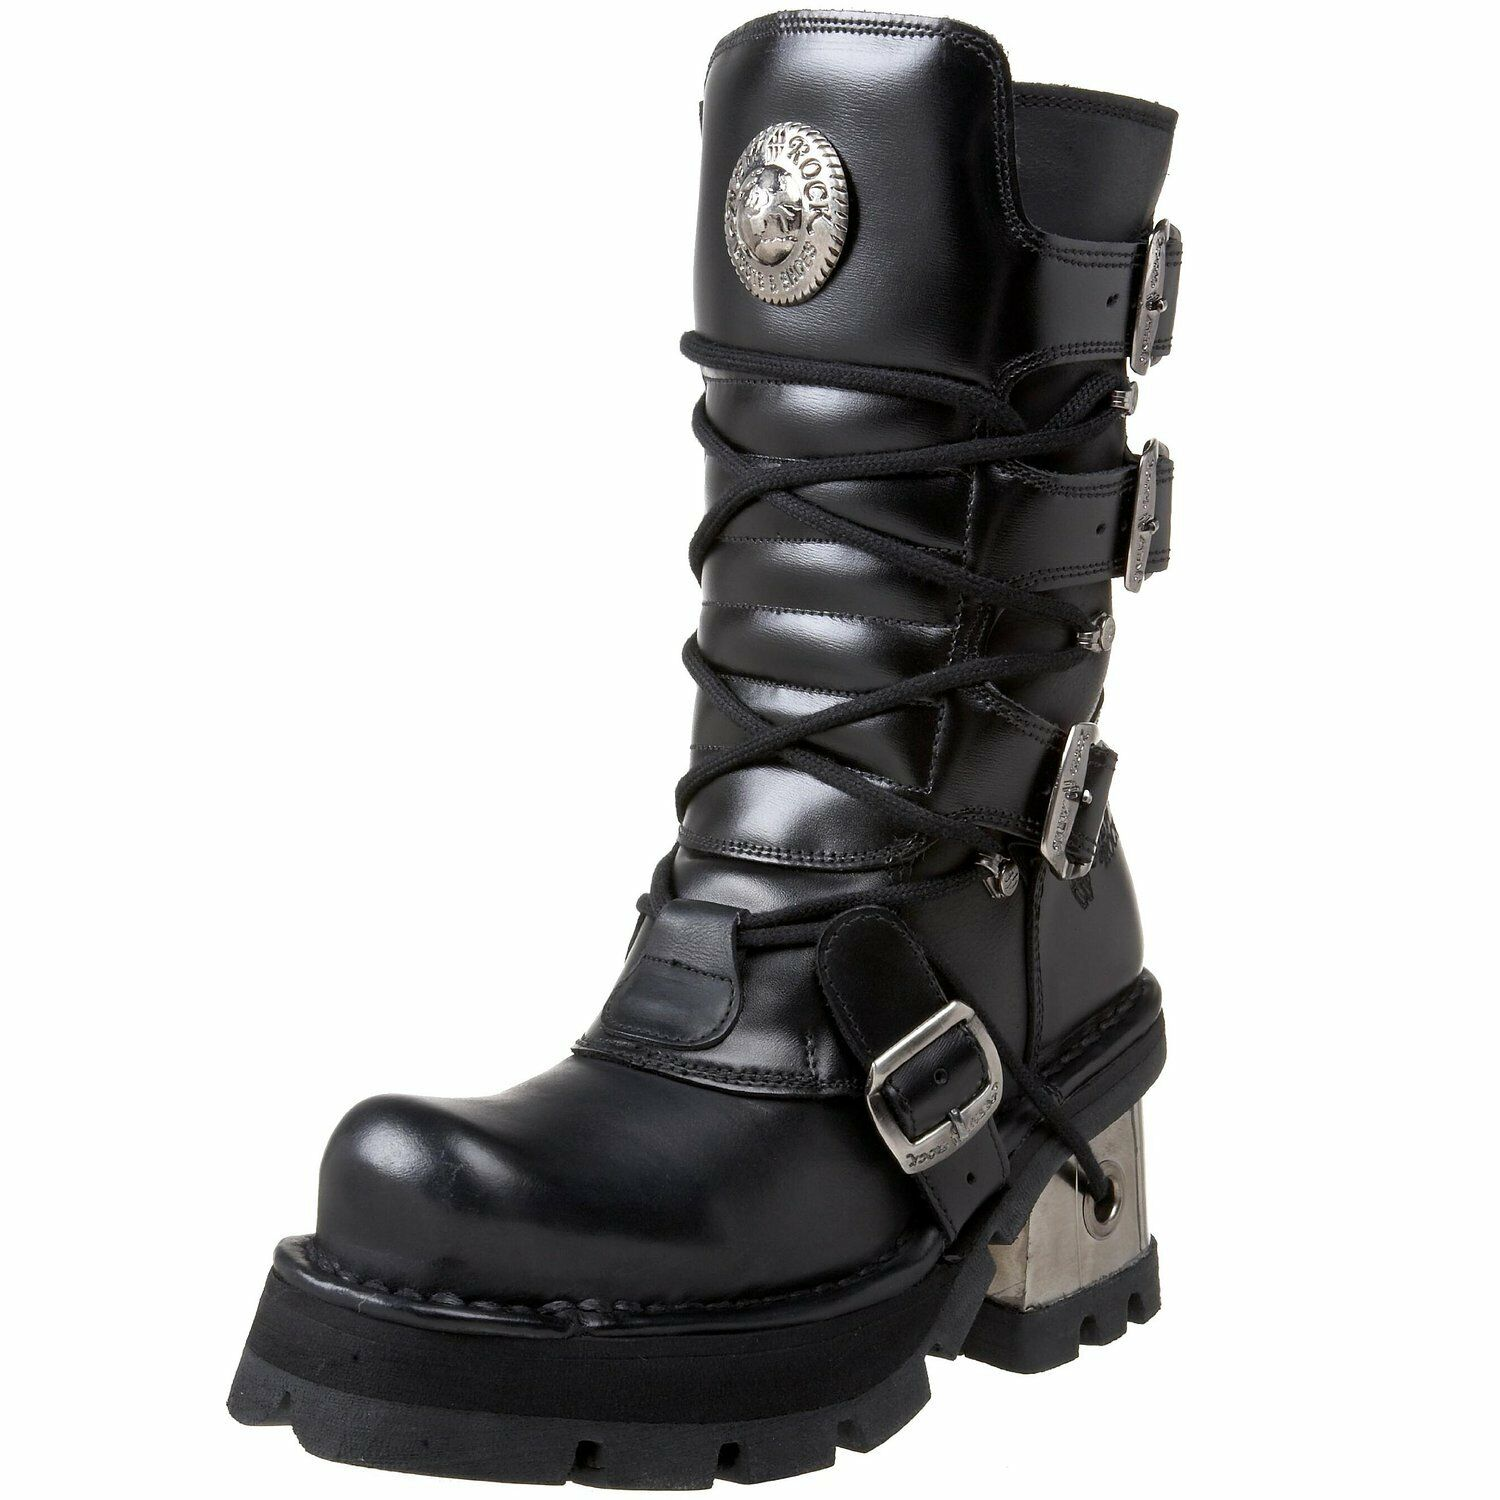 Newrock New Rock 373 S3 Ladies Metallic Boots Black Leather Goth Biker Emo  373